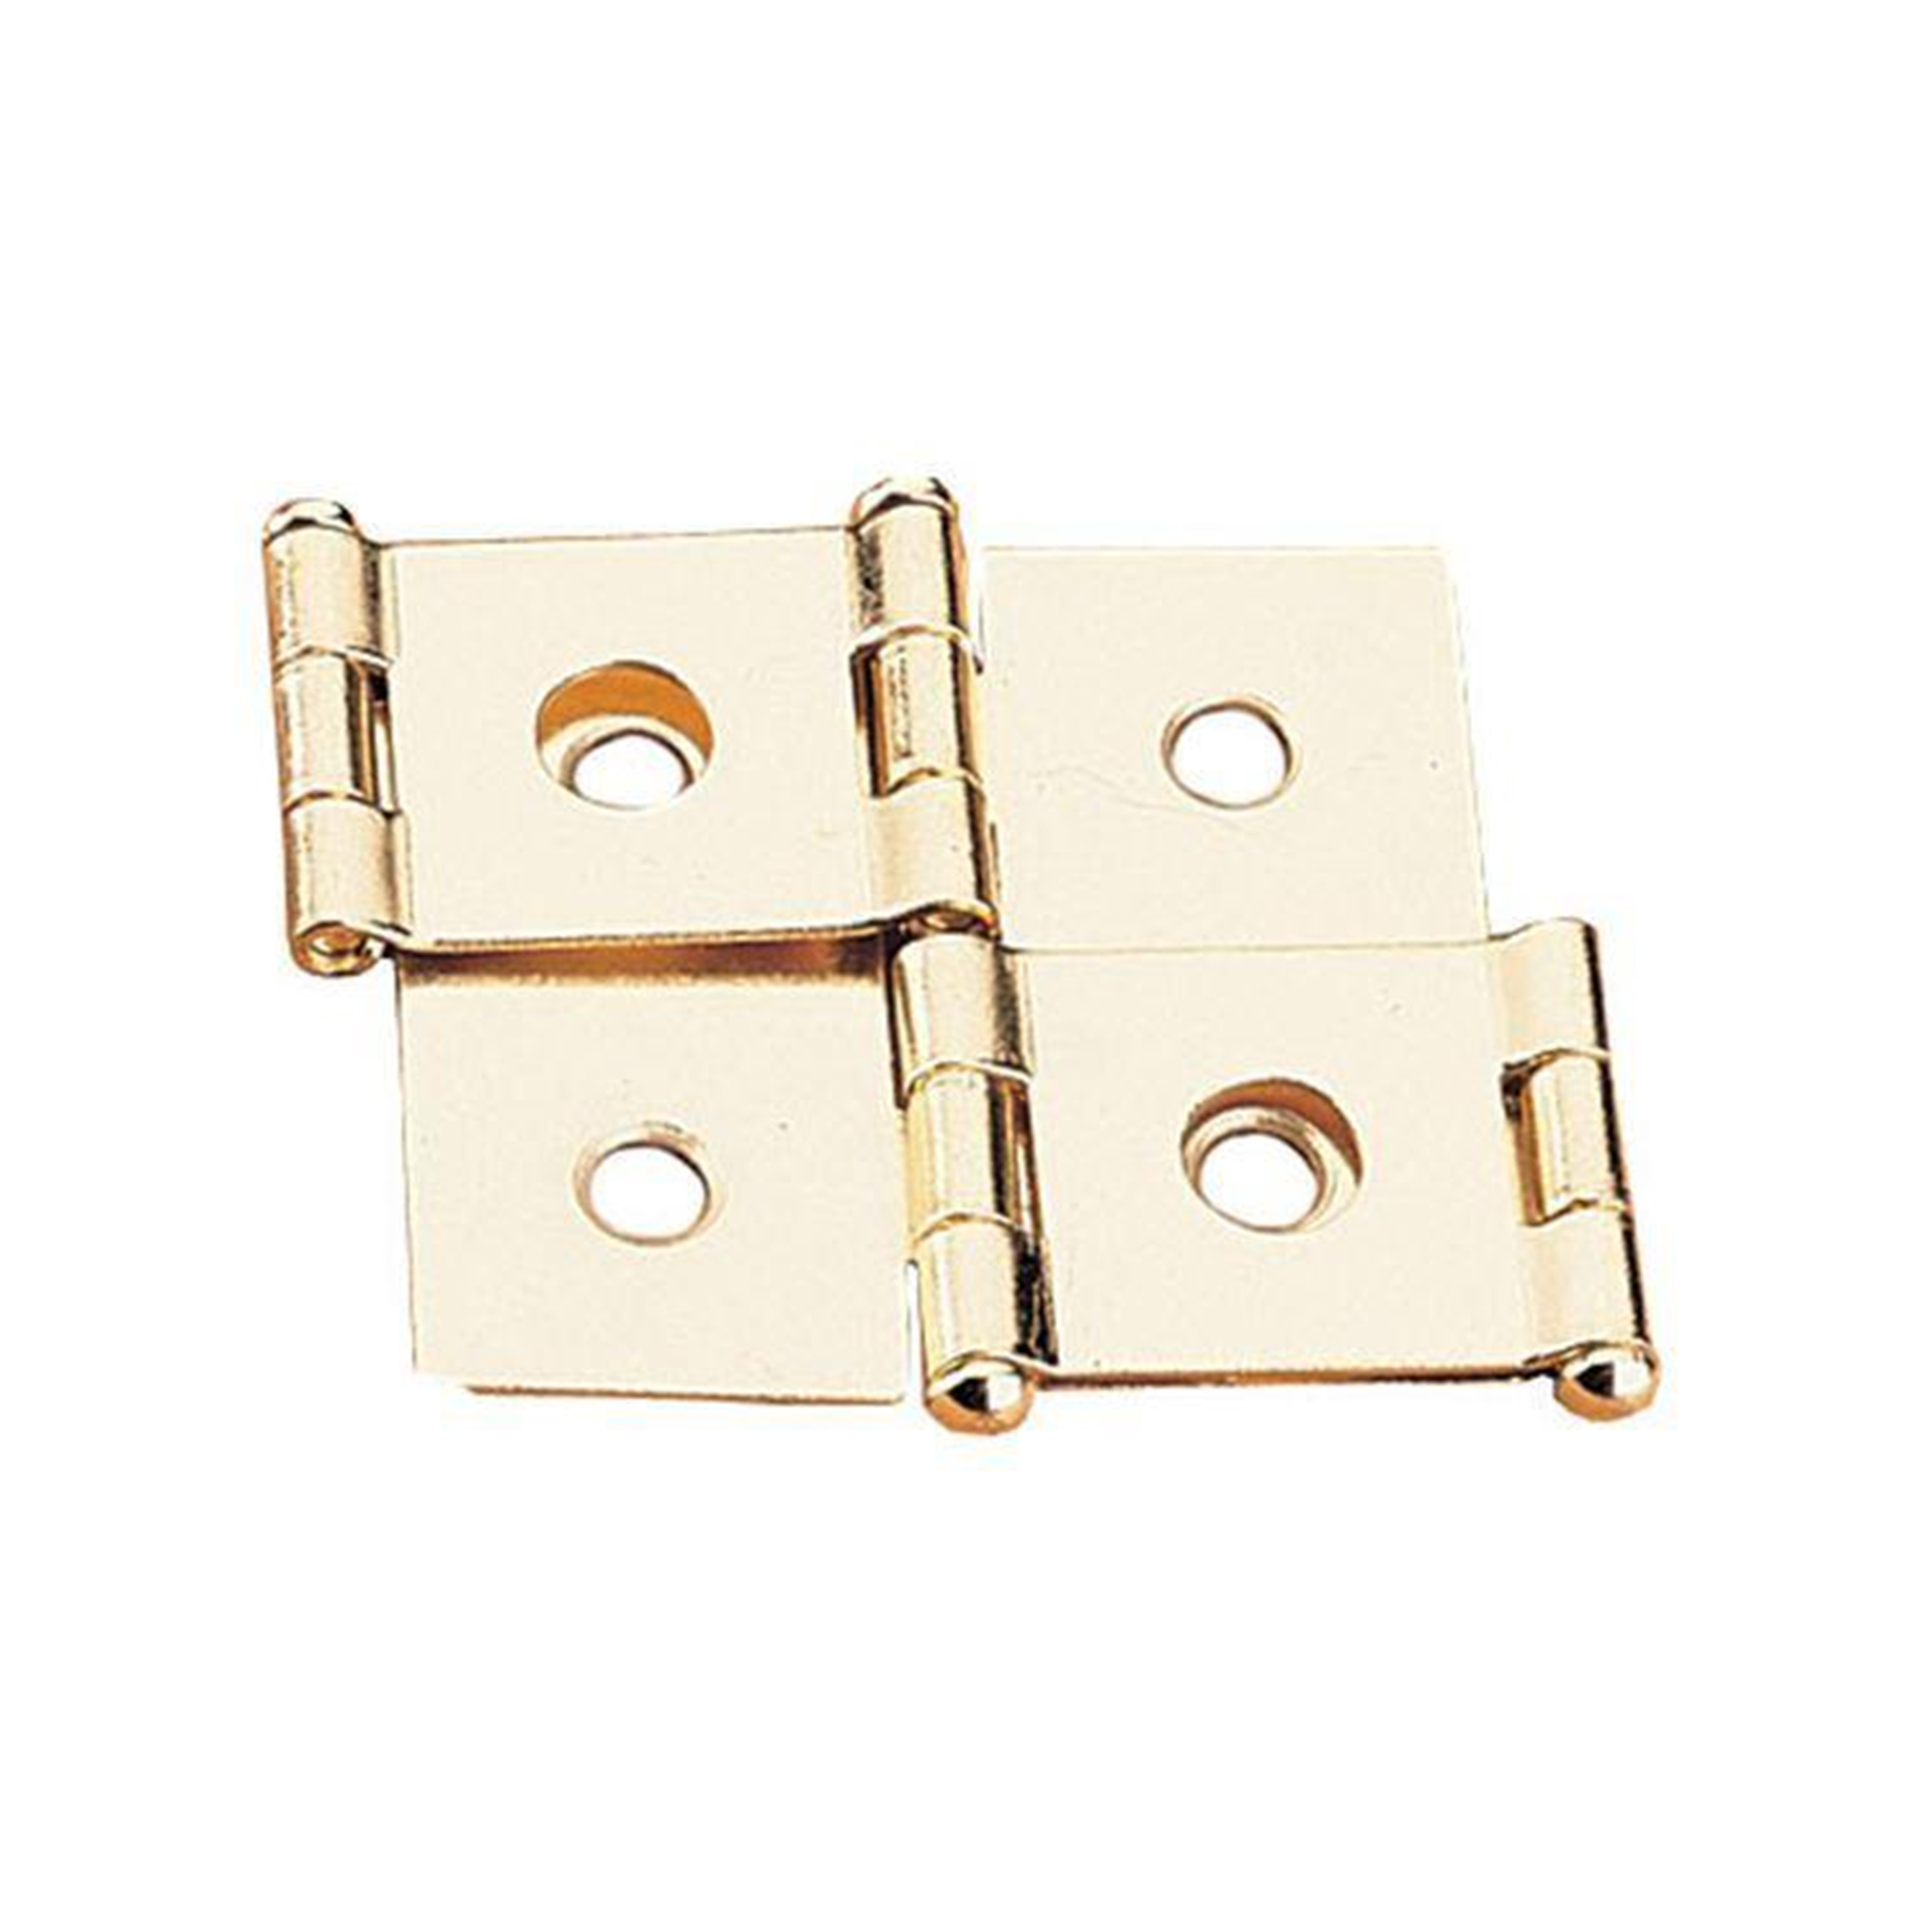 Non-mortise Hinge Polished Brass Plated, Pair, fits 3/4